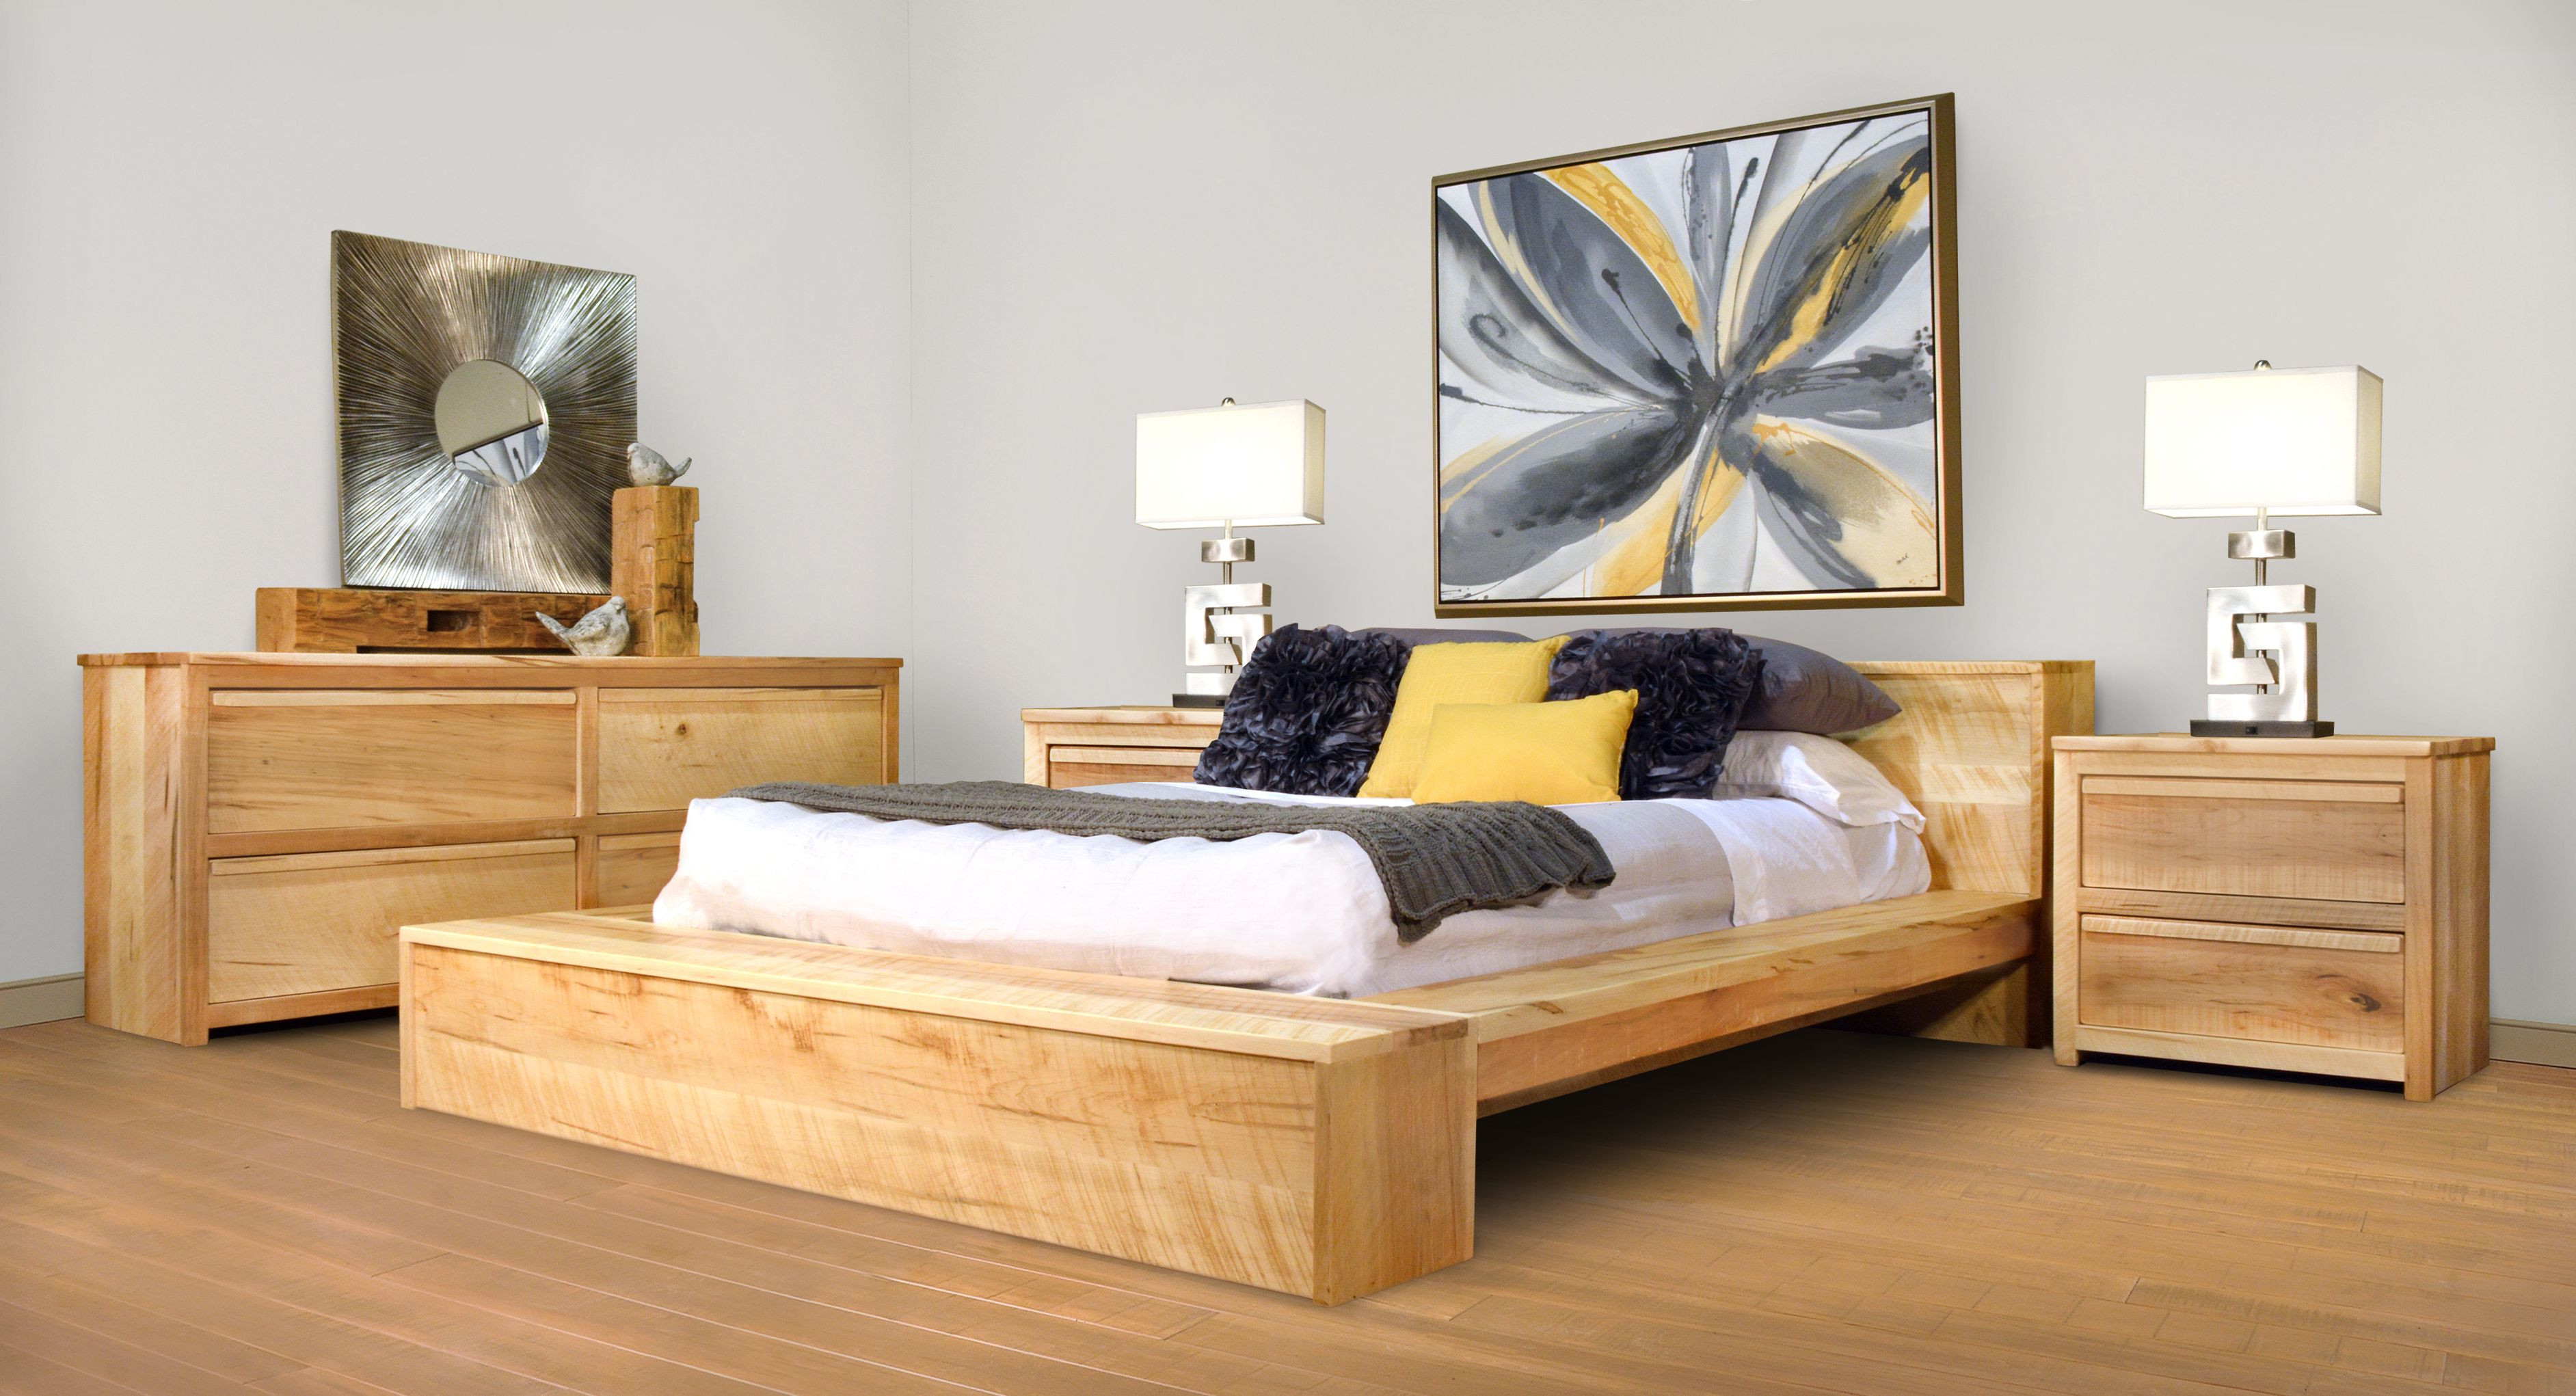 Ruff Sawn Hugo Bedroom Furniture Collection